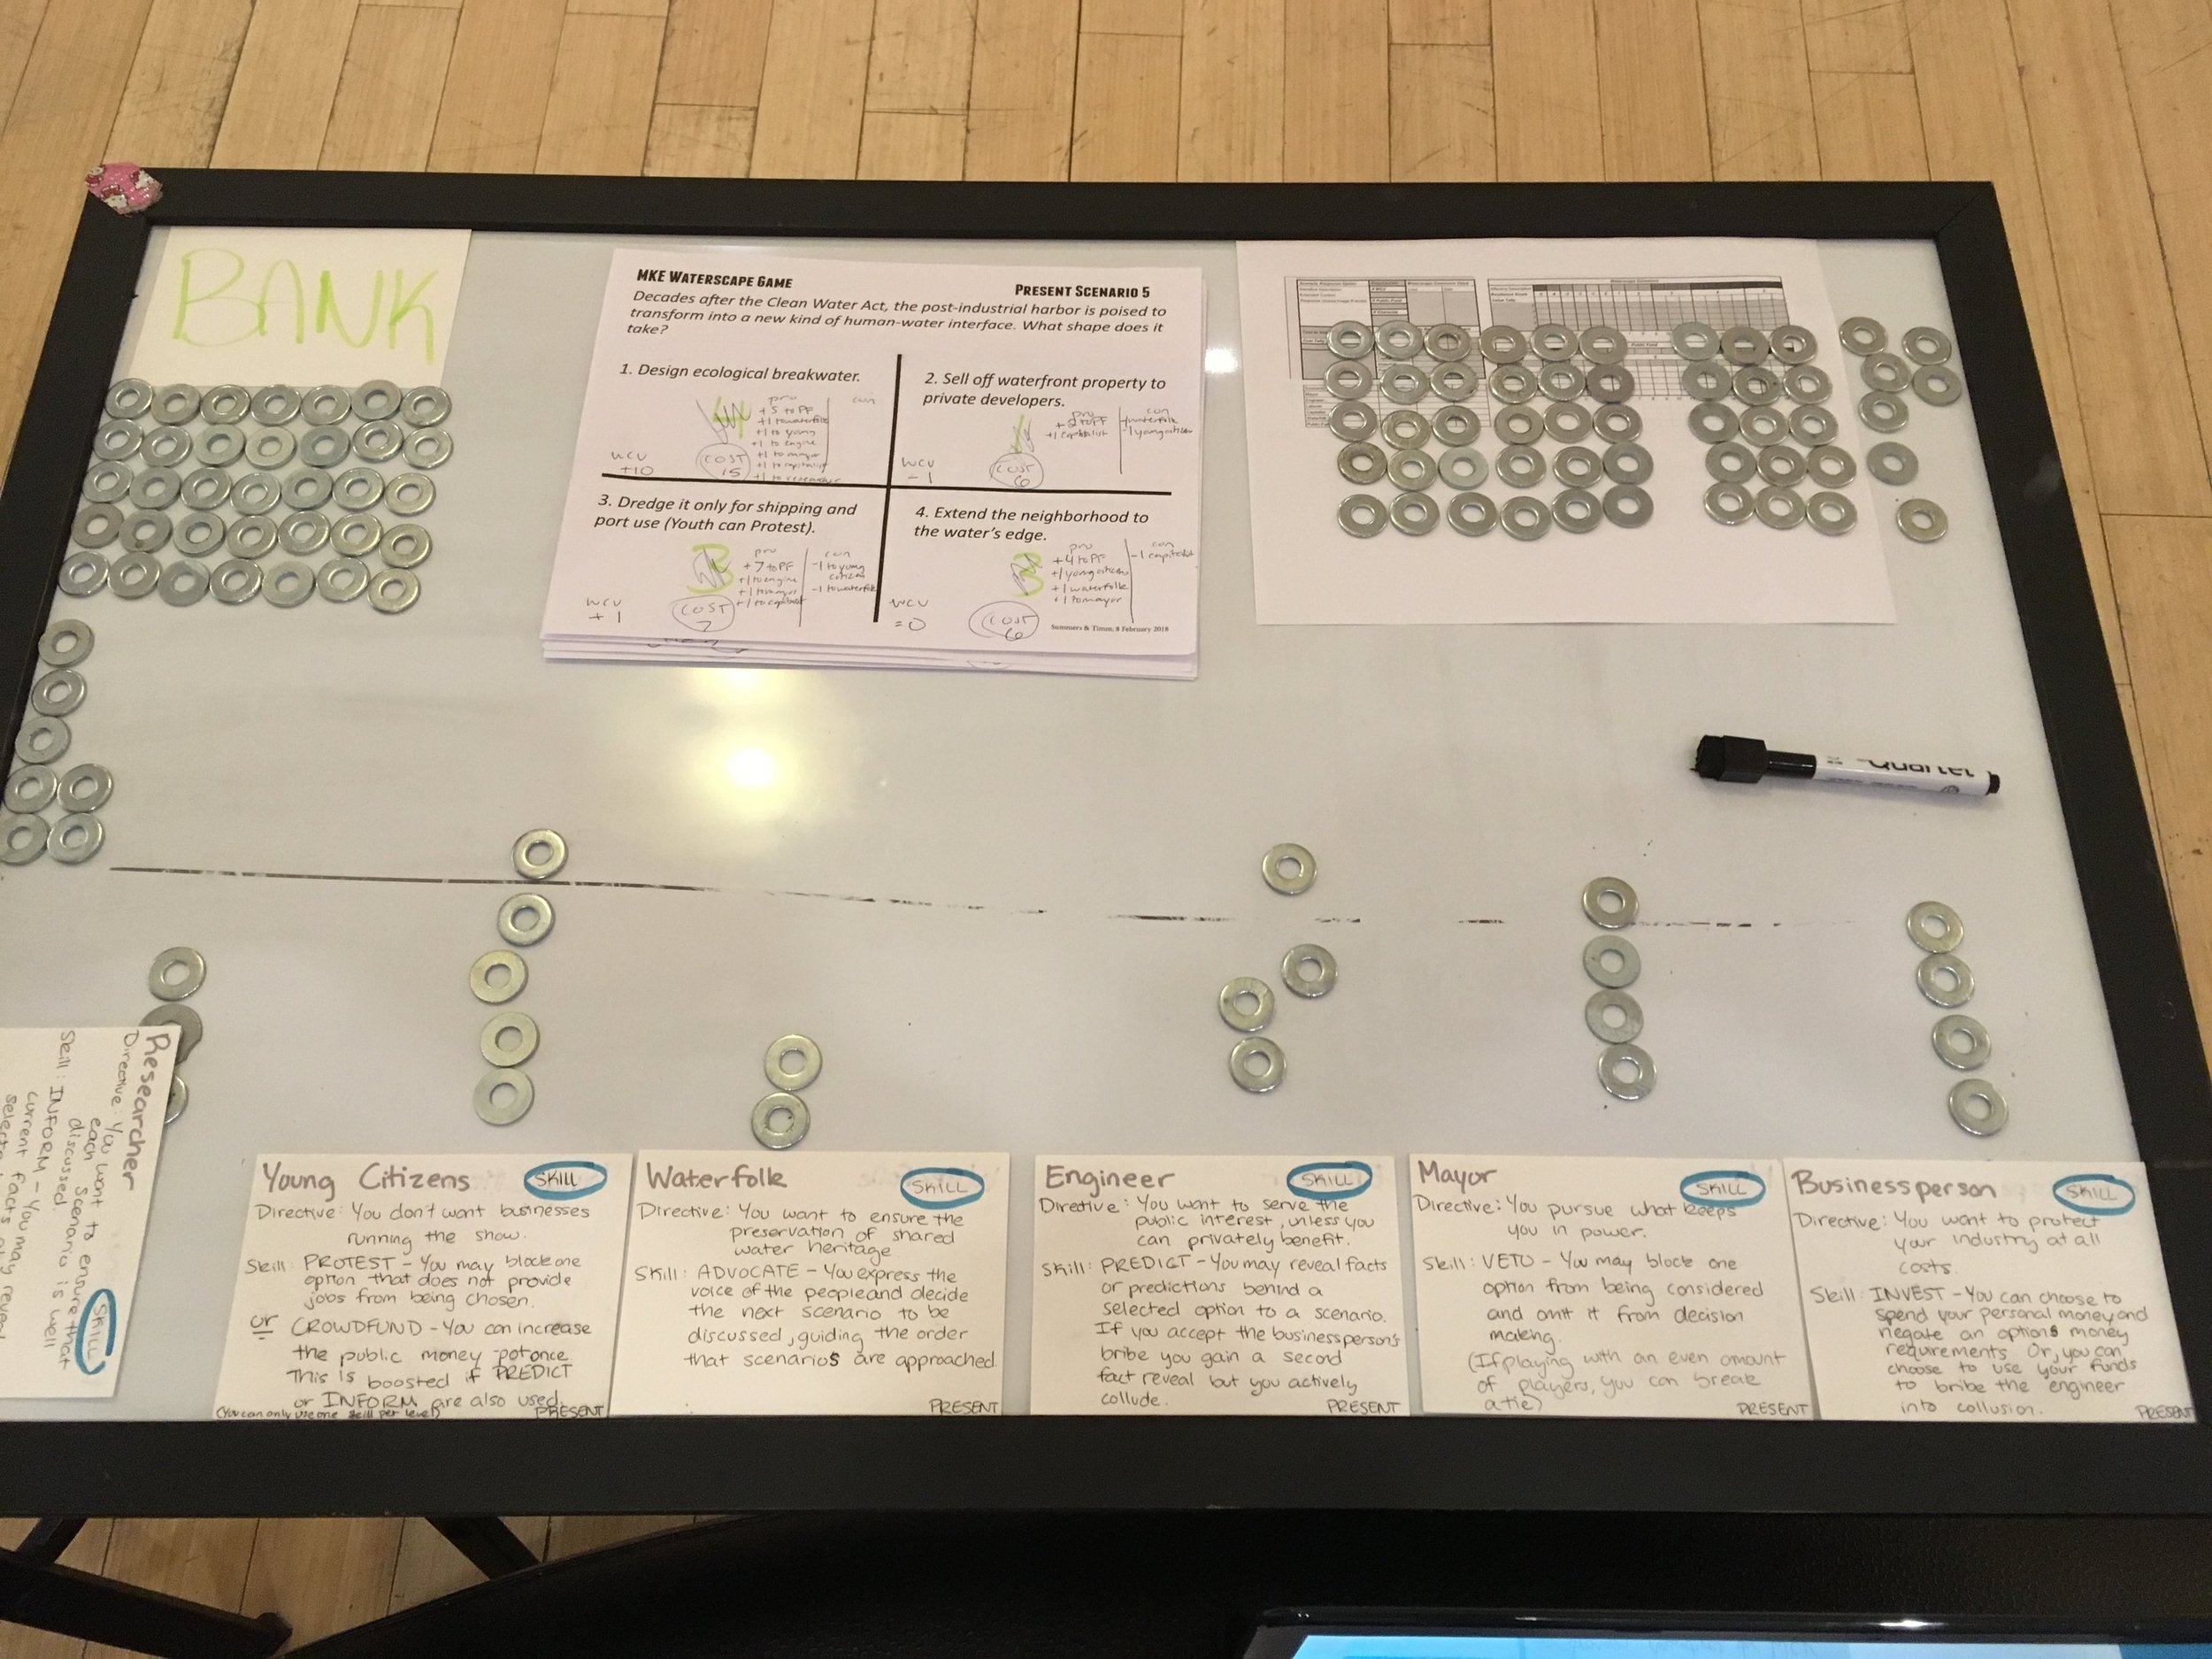 Although we're building a digital game, there's nothing like paper, pencil, and physical objects to work through a prototype. In a few weeks, the paper prototype will be ready for playtesting. Drop us a line if you want to try it out!